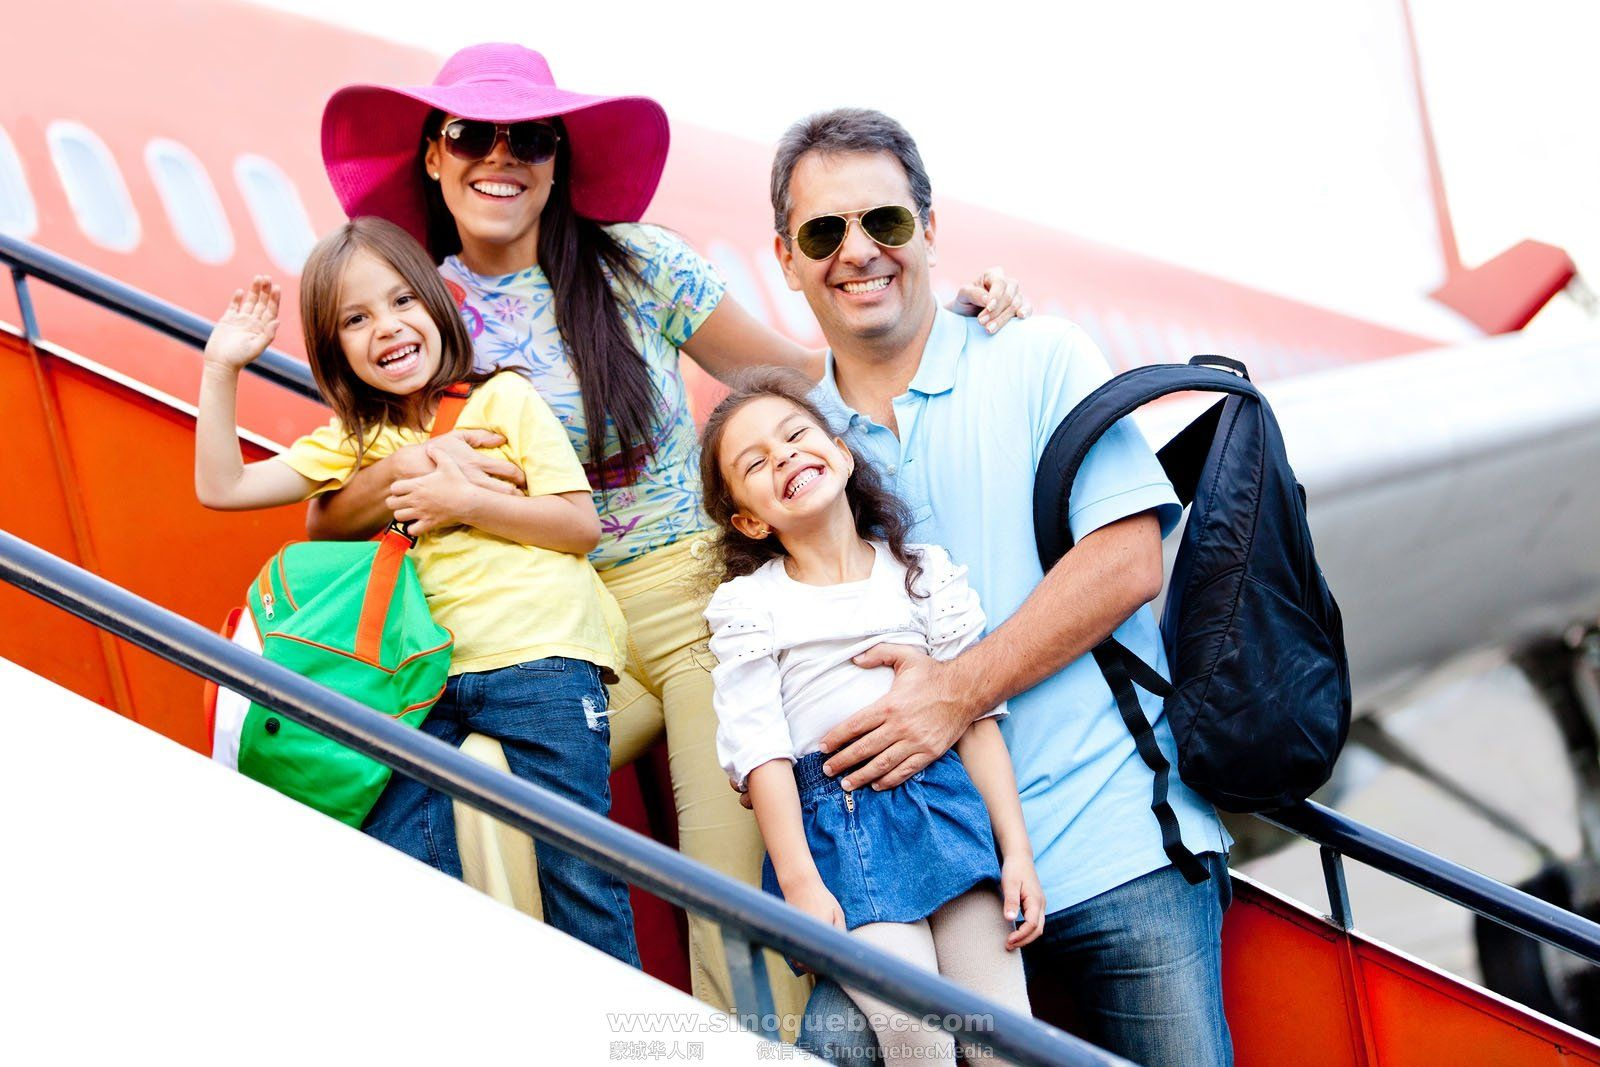 bigstock-Family-going-on-a-trip-traveli-30973403.jpg